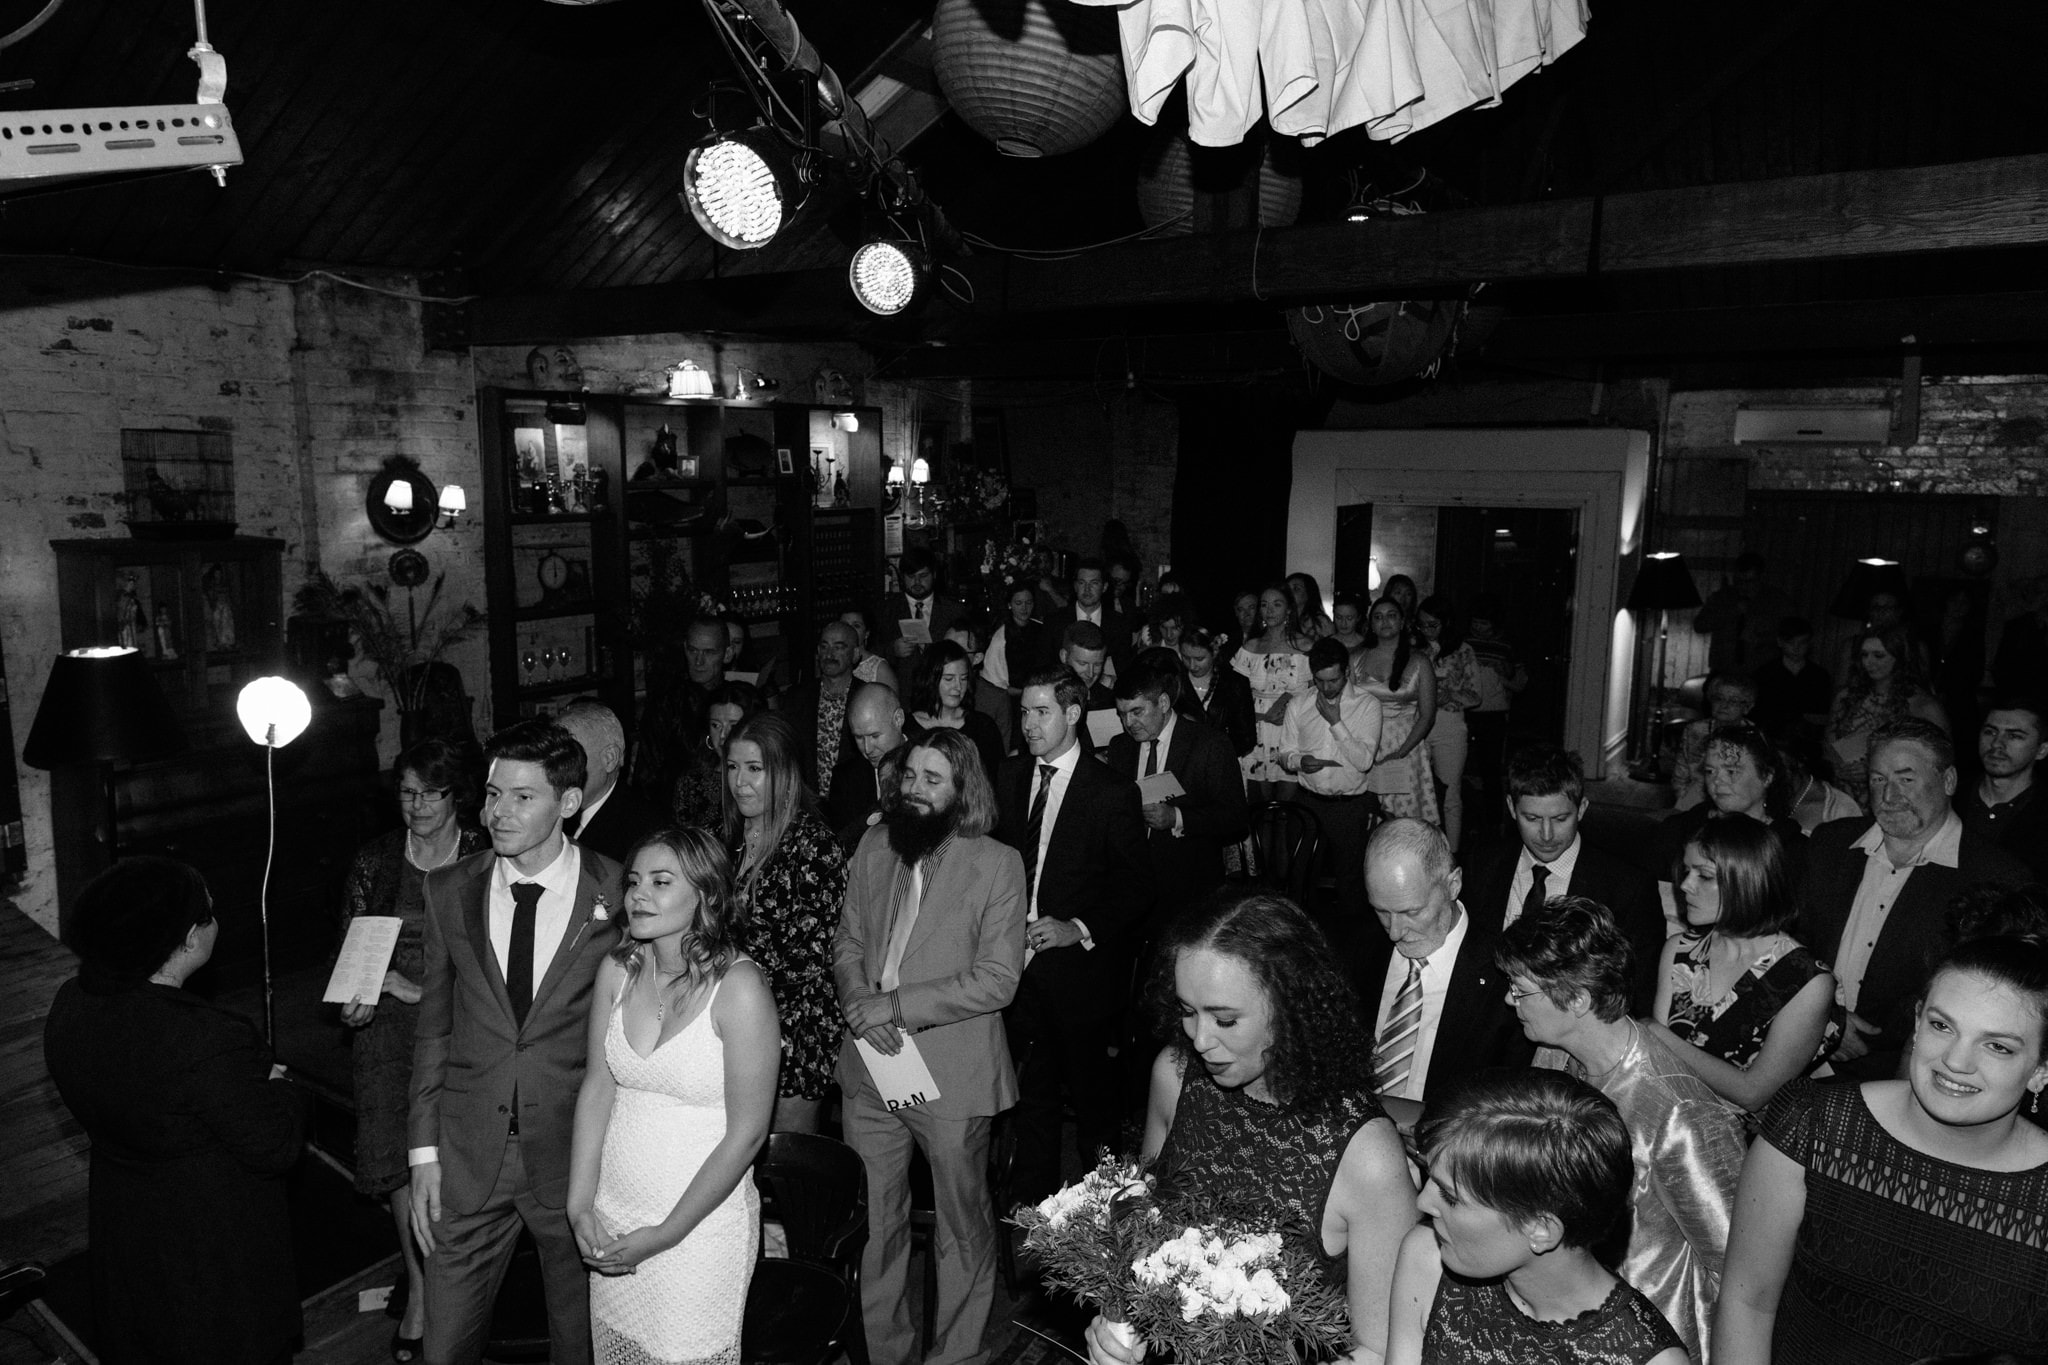 wedding guests at ceremony - candid wedding documentation in melbourne